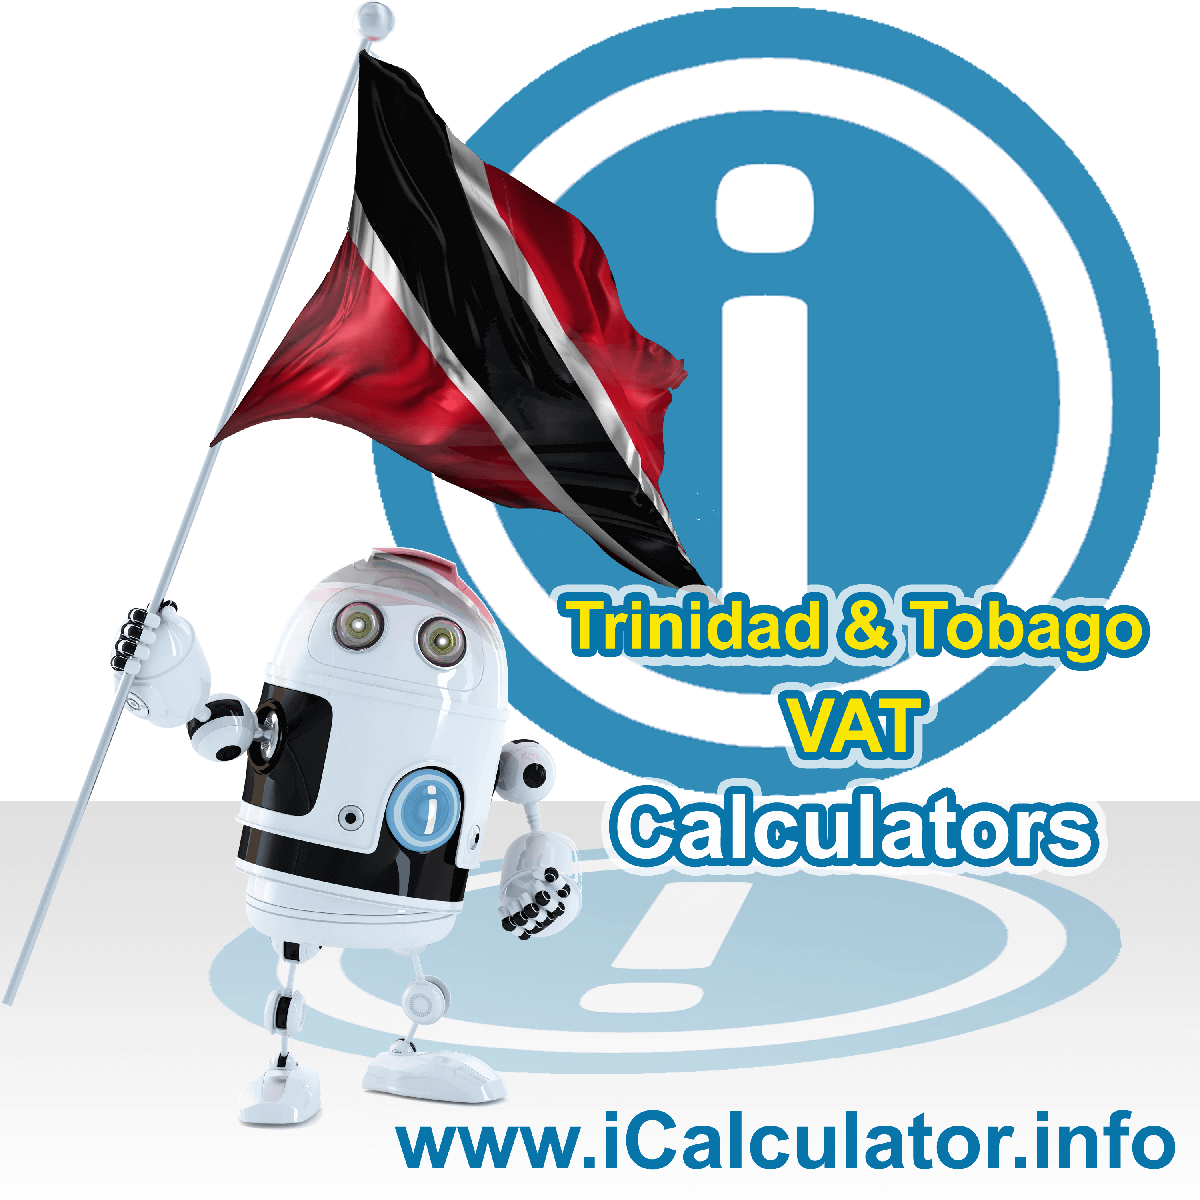 Trinidad And Tobago VAT Calculator. This image shows the Trinidad And Tobago flag and information relating to the VAT formula used for calculating Value Added Tax in Trinidad And Tobago using the Trinidad And Tobago VAT Calculator in 2020